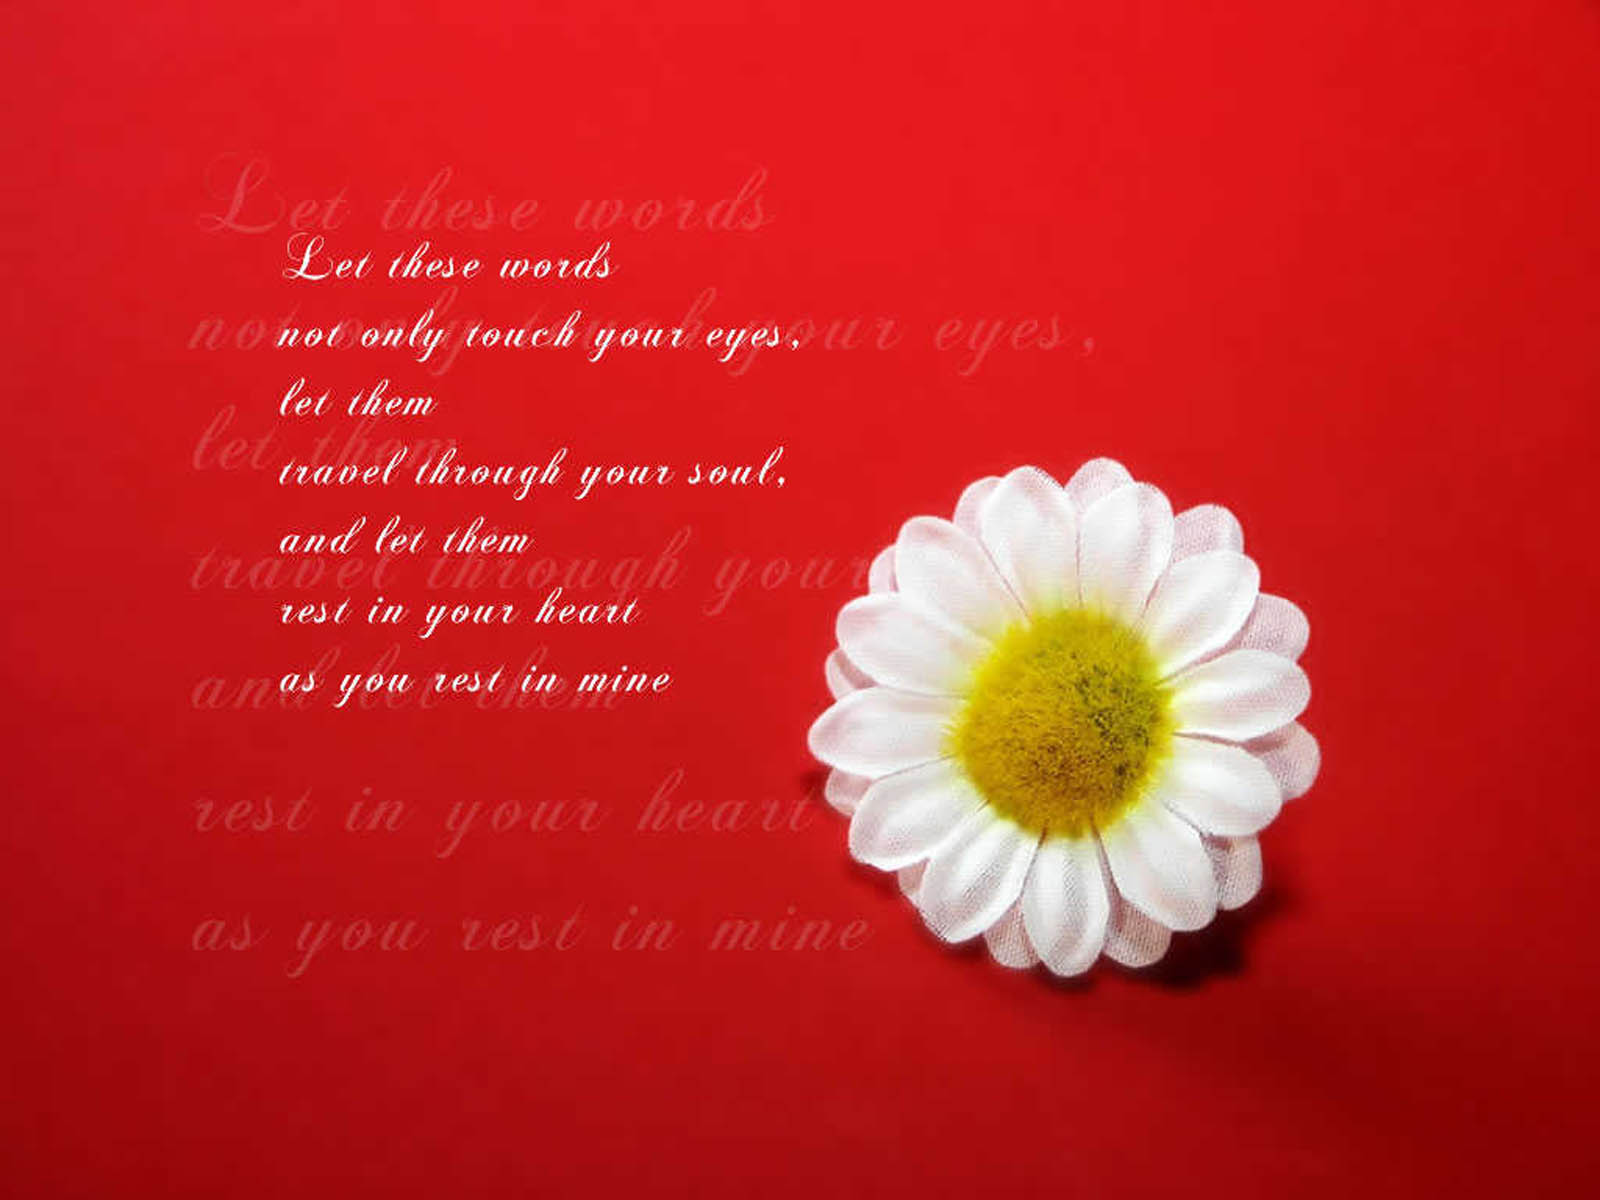 Tag Love Quotes Wallpapers BackgroundsPhotos Images and Pictures 1600x1200